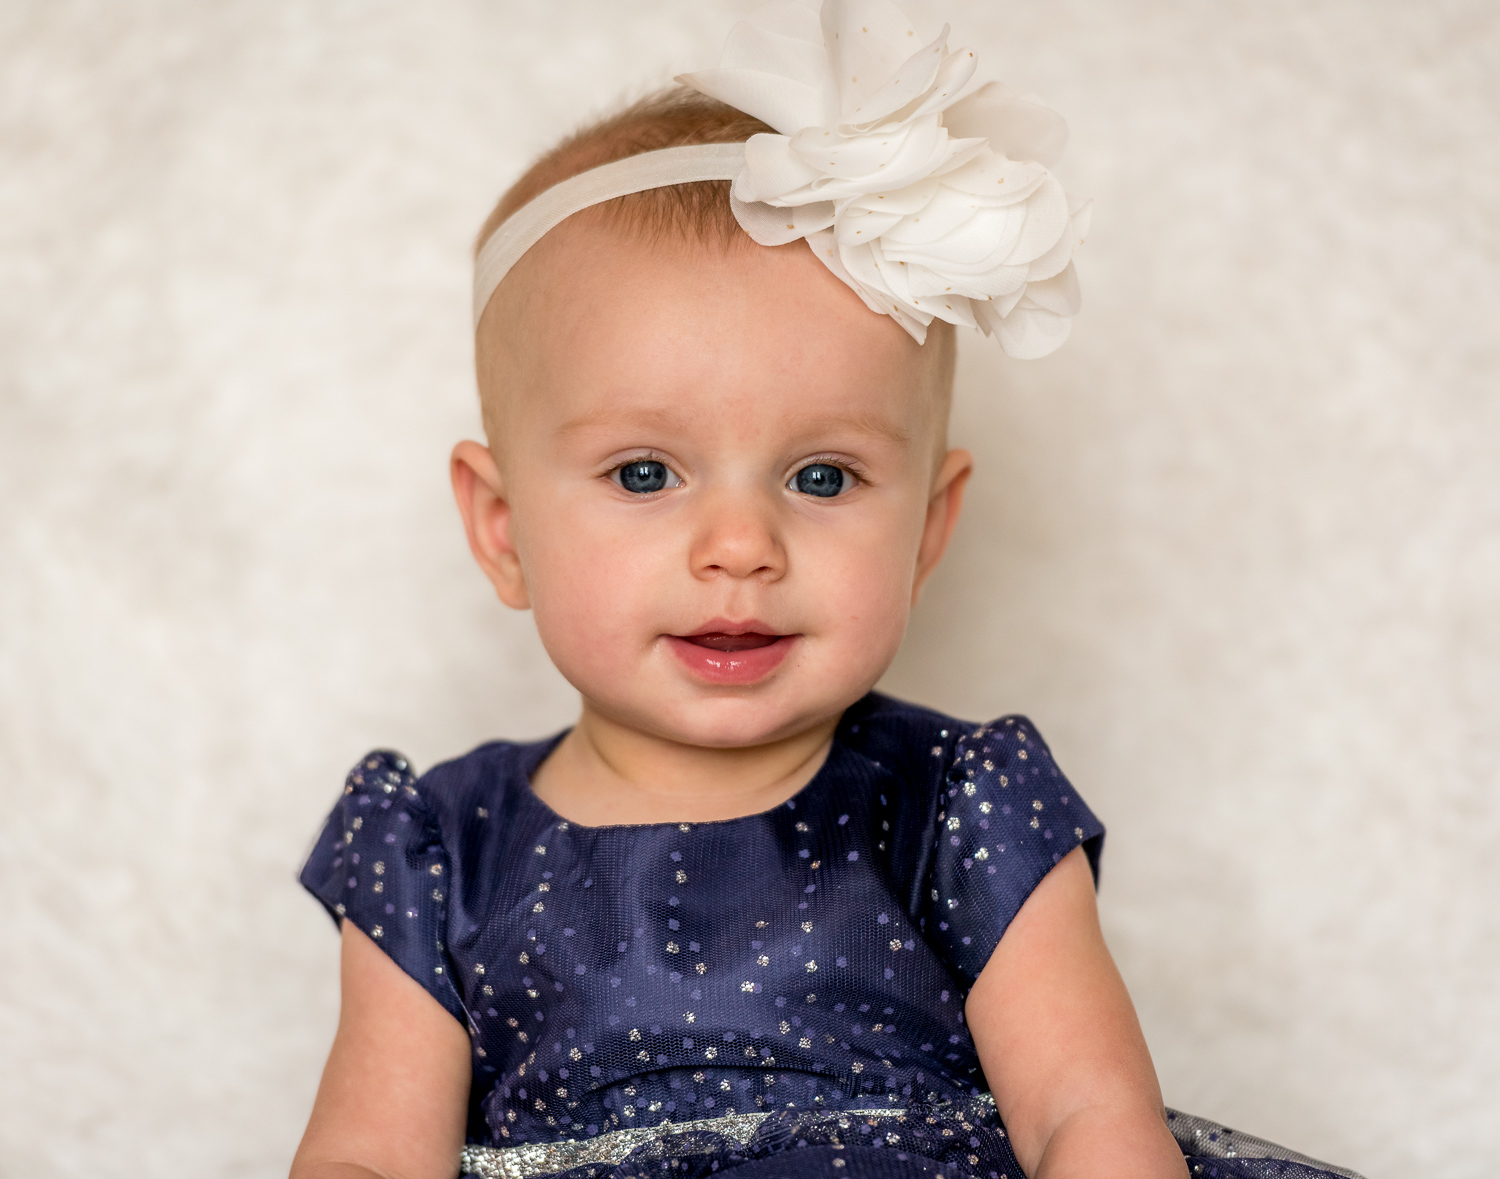 little girl in a blue dress - 5 Crucial Mistakes You Need to Avoid When Photographing Clients